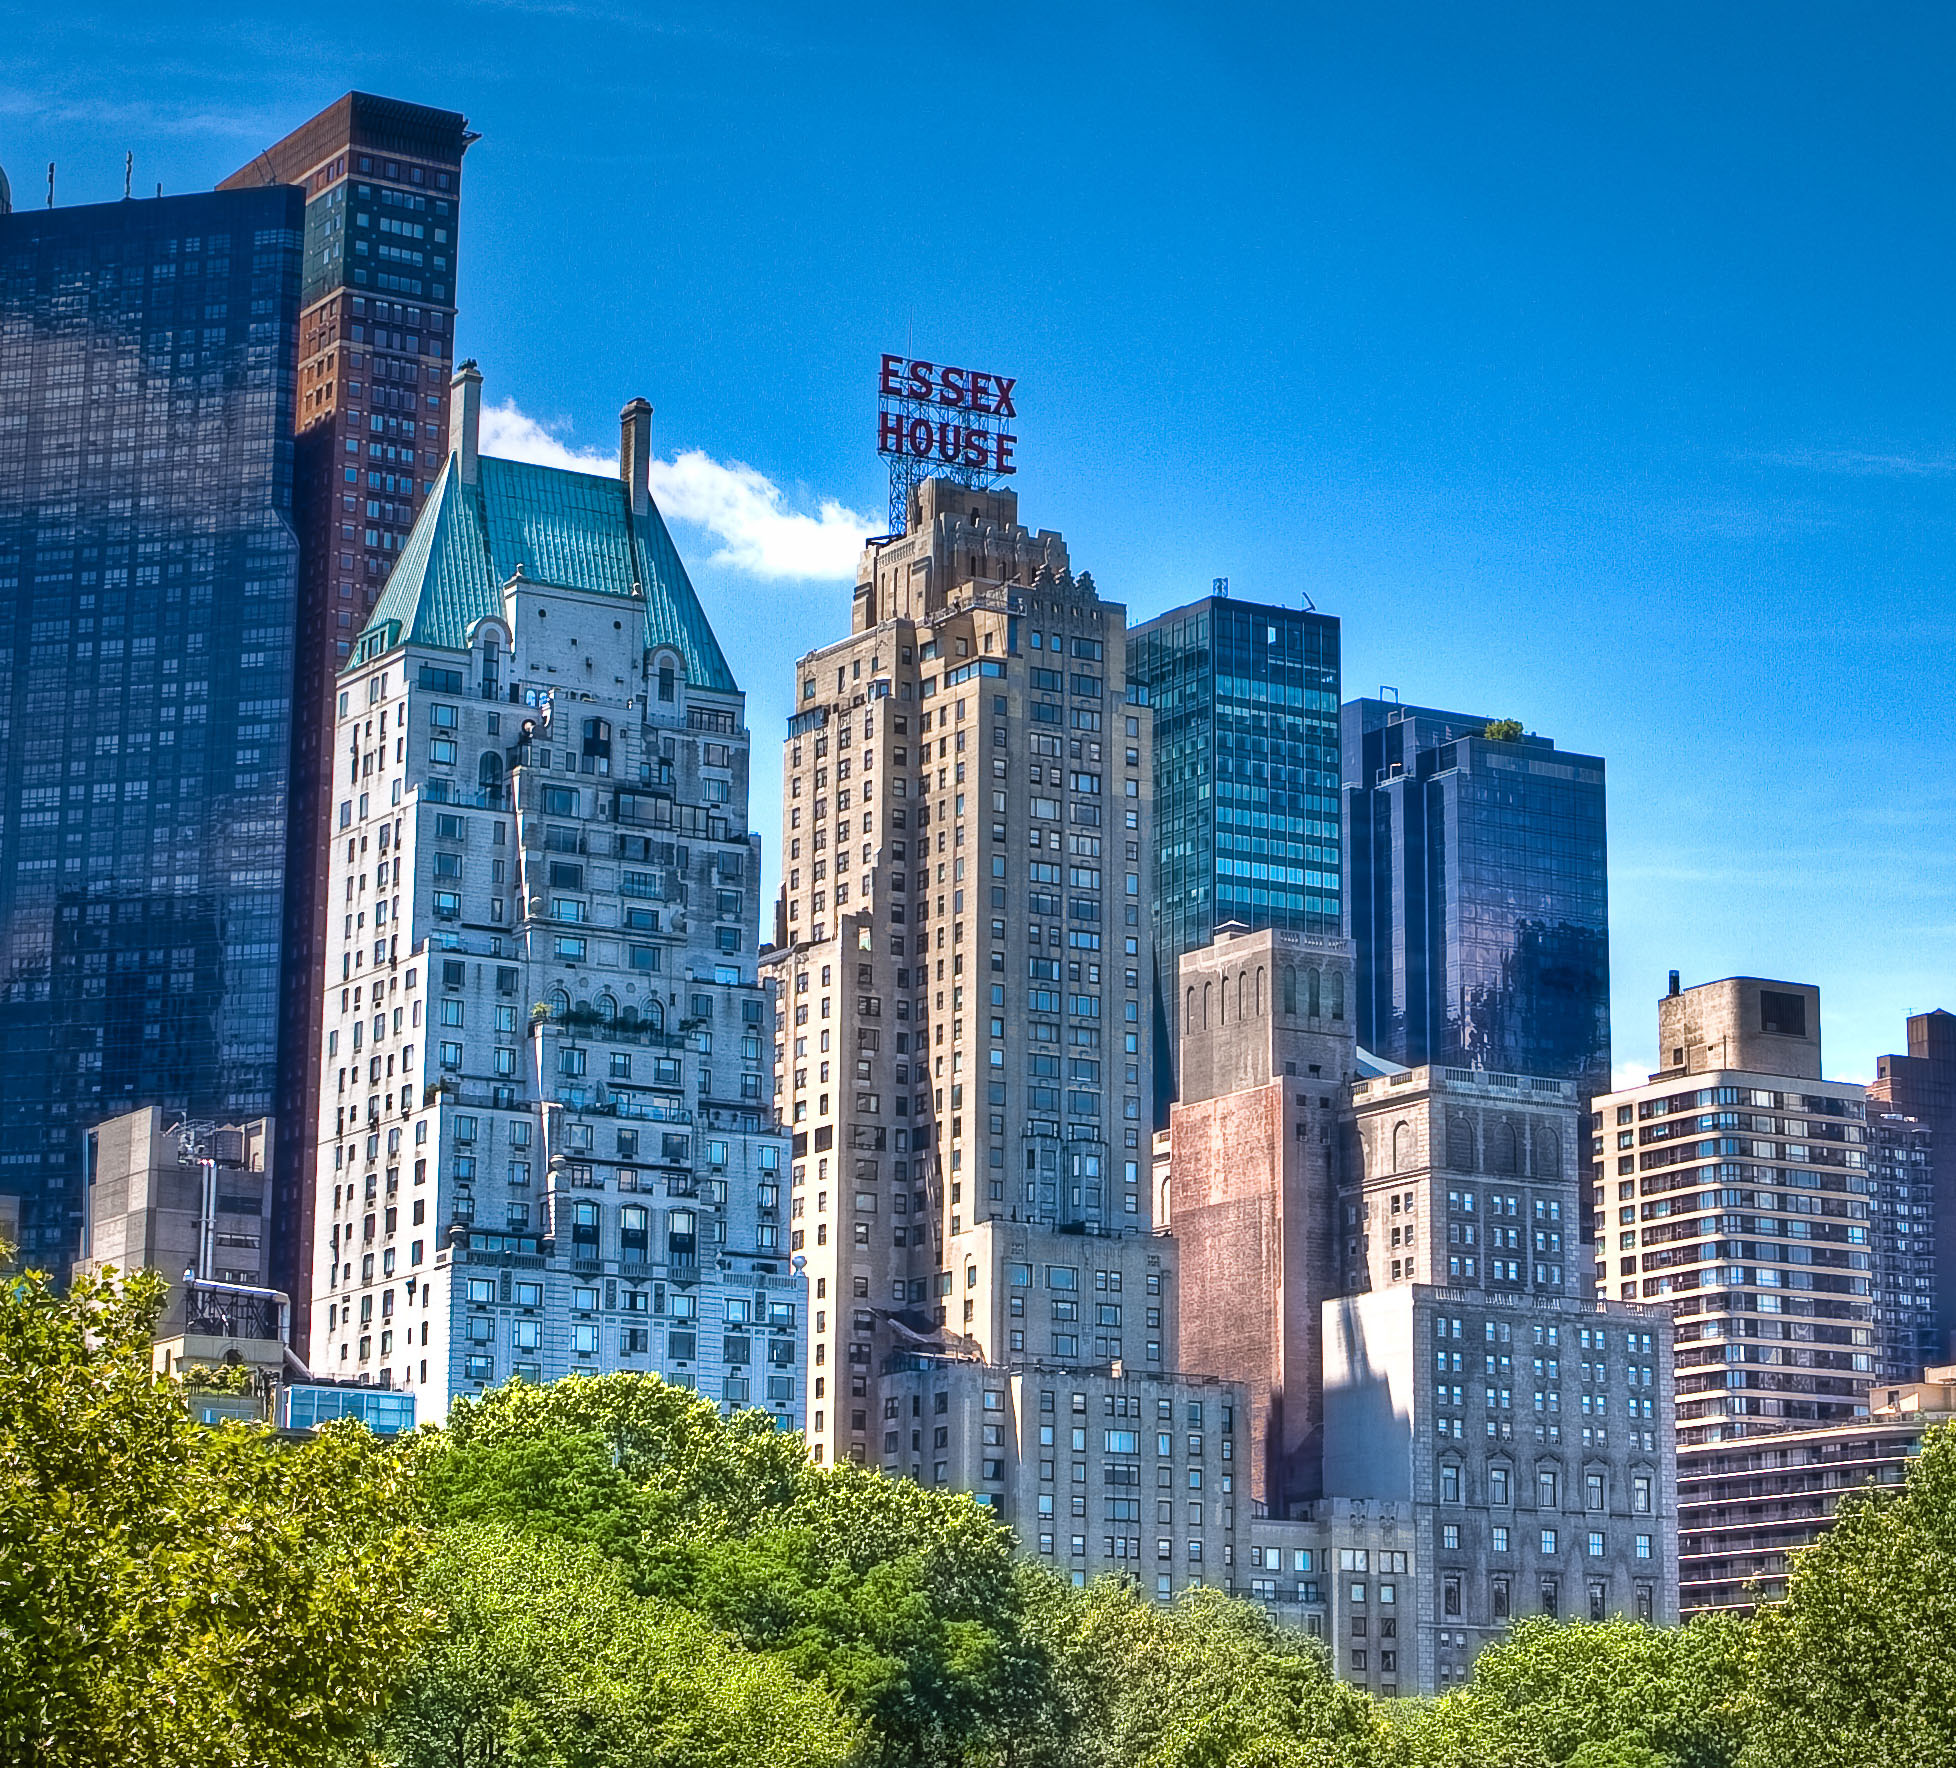 New york city gets first jw marriott frequent business for Hotels near central park new york